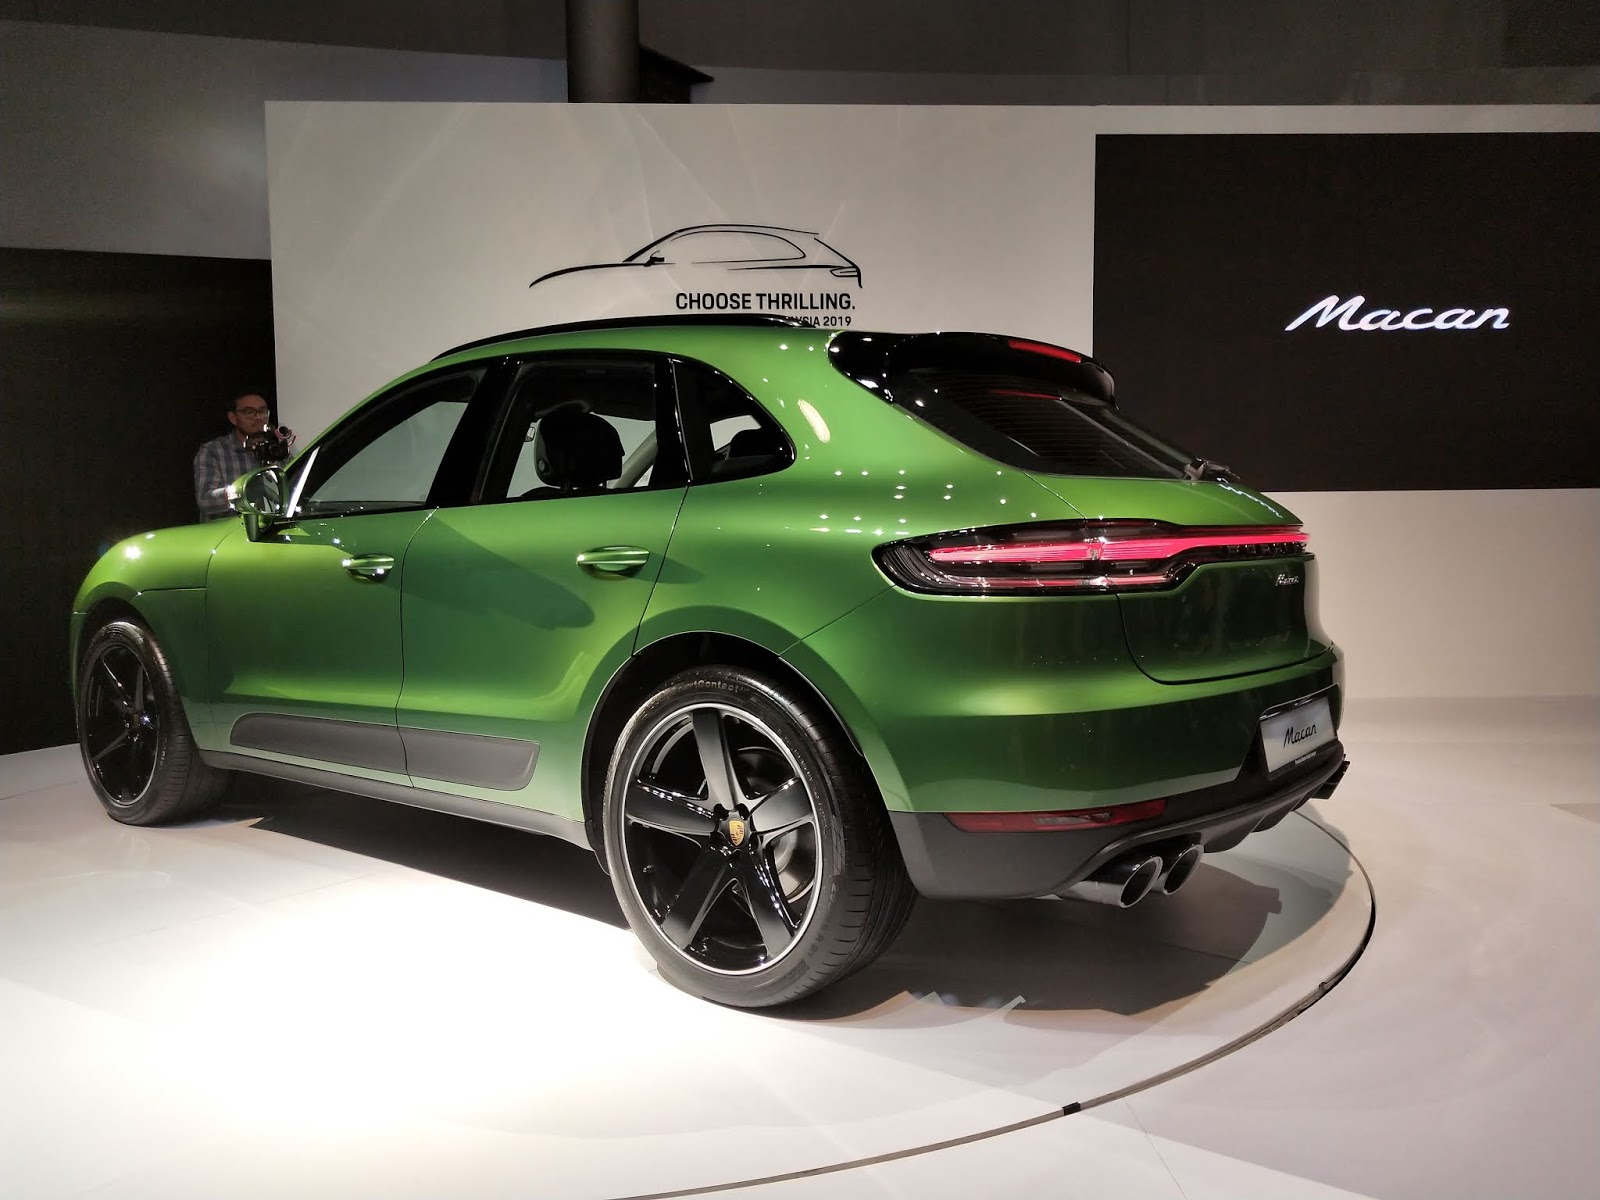 Motoring Malaysia The 2019 Porsche Macan Is Now Officially In Malaysia Prices Start At Rm455 000